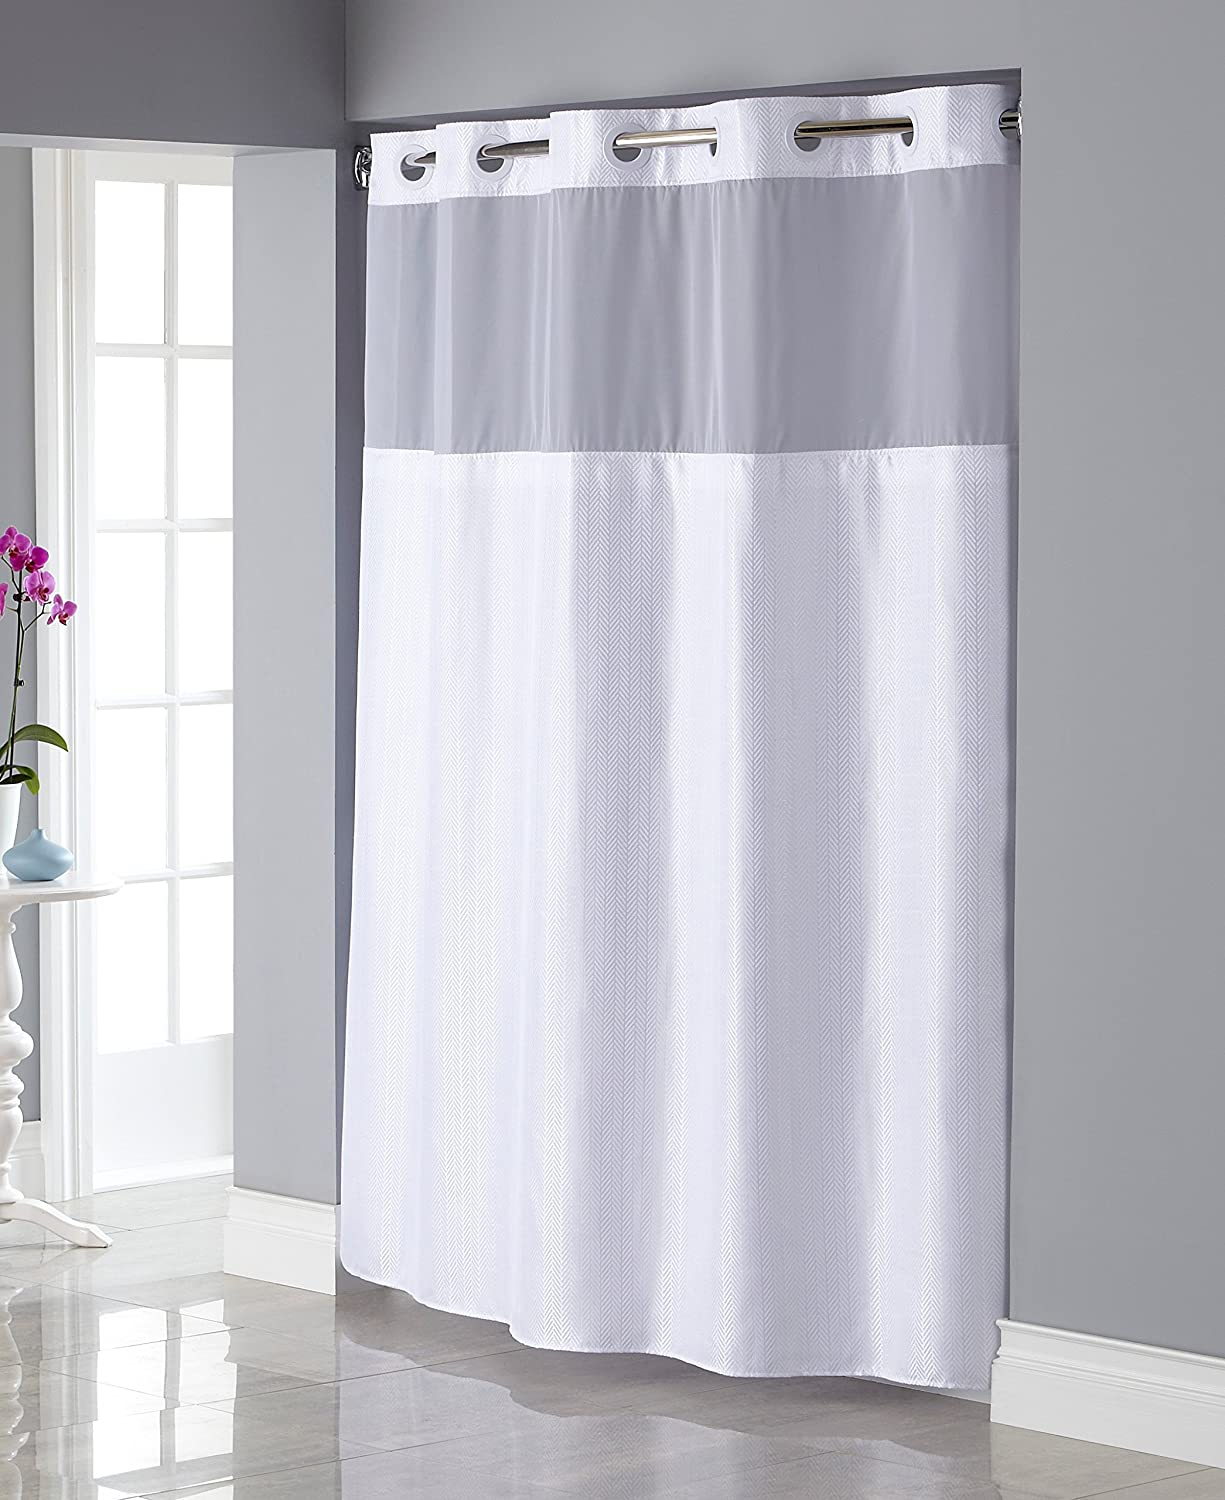 Amazon Hookless RBH34MY835 Shiny Texture Herringbone Shower Curtain With Snap In PEVA Liner